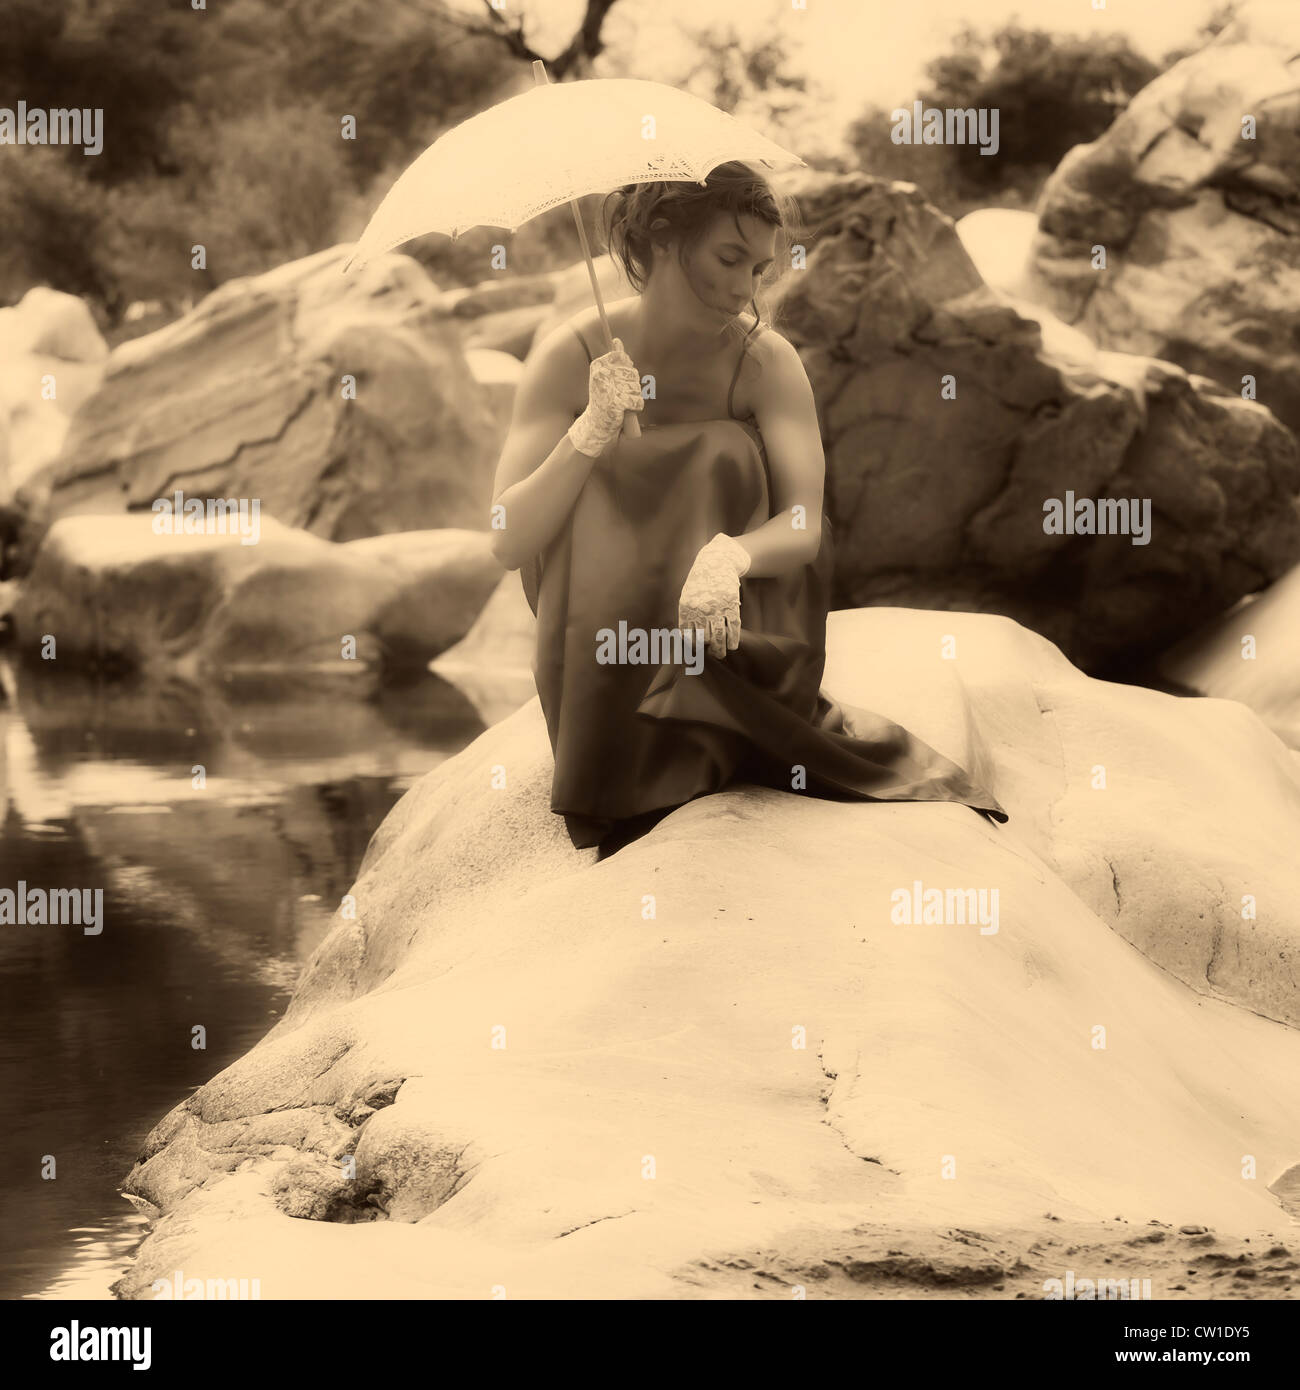 A young woman sitting on a rock in the water with a parasol - Stock Image